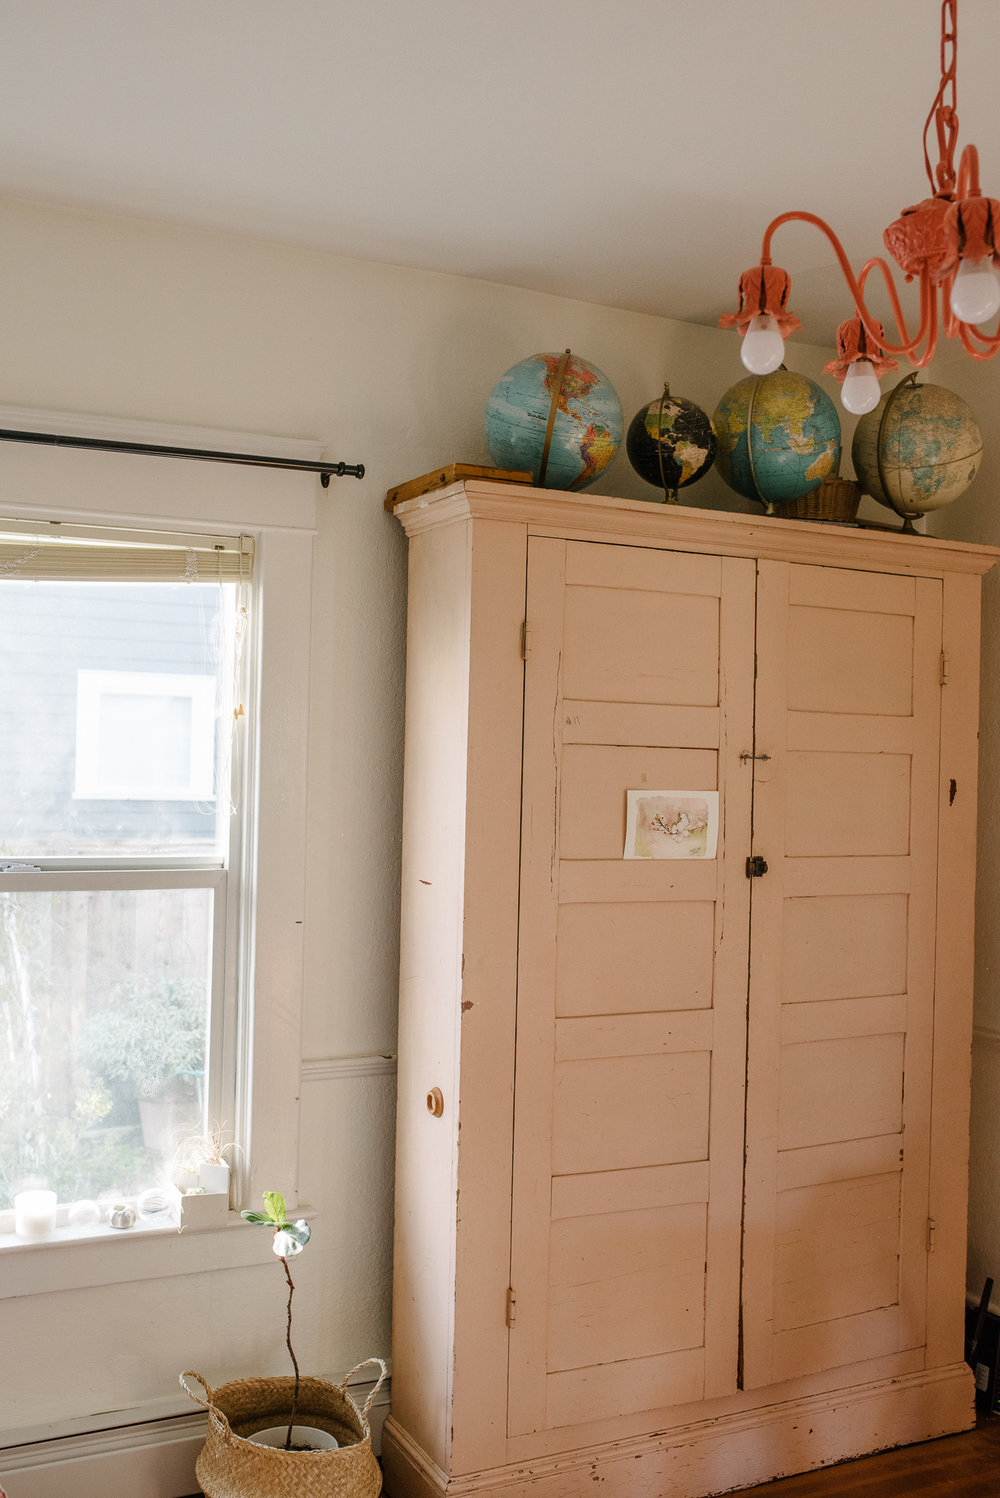 A TACOMA PHOTOGRAPHER EMBRACES THE SPACE SHE'S IN - #mywholehome